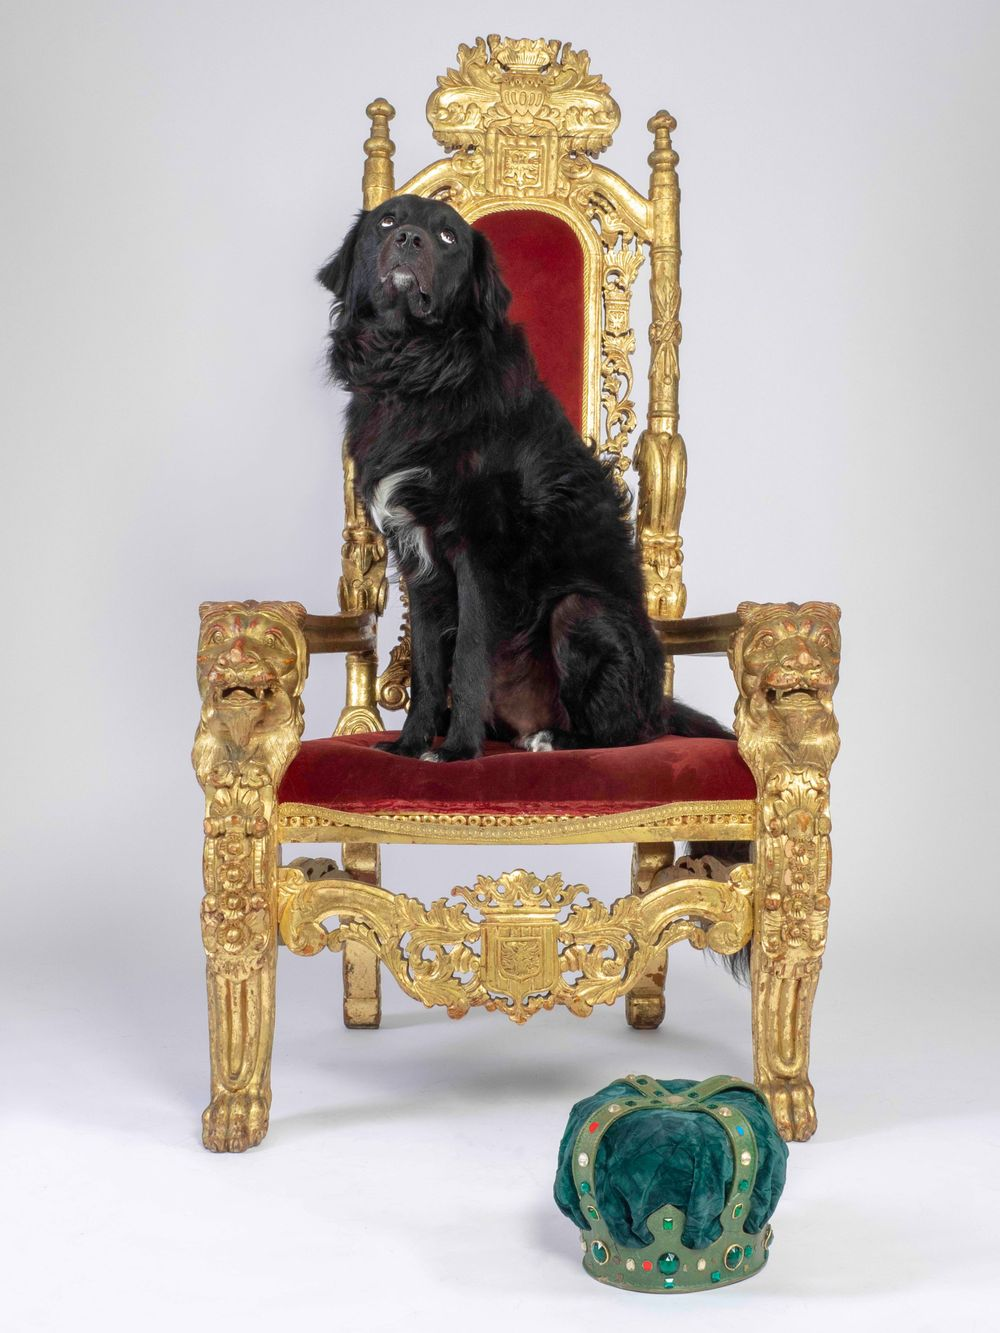 Rescue dog Bernie in 'The King has lost his Crown'